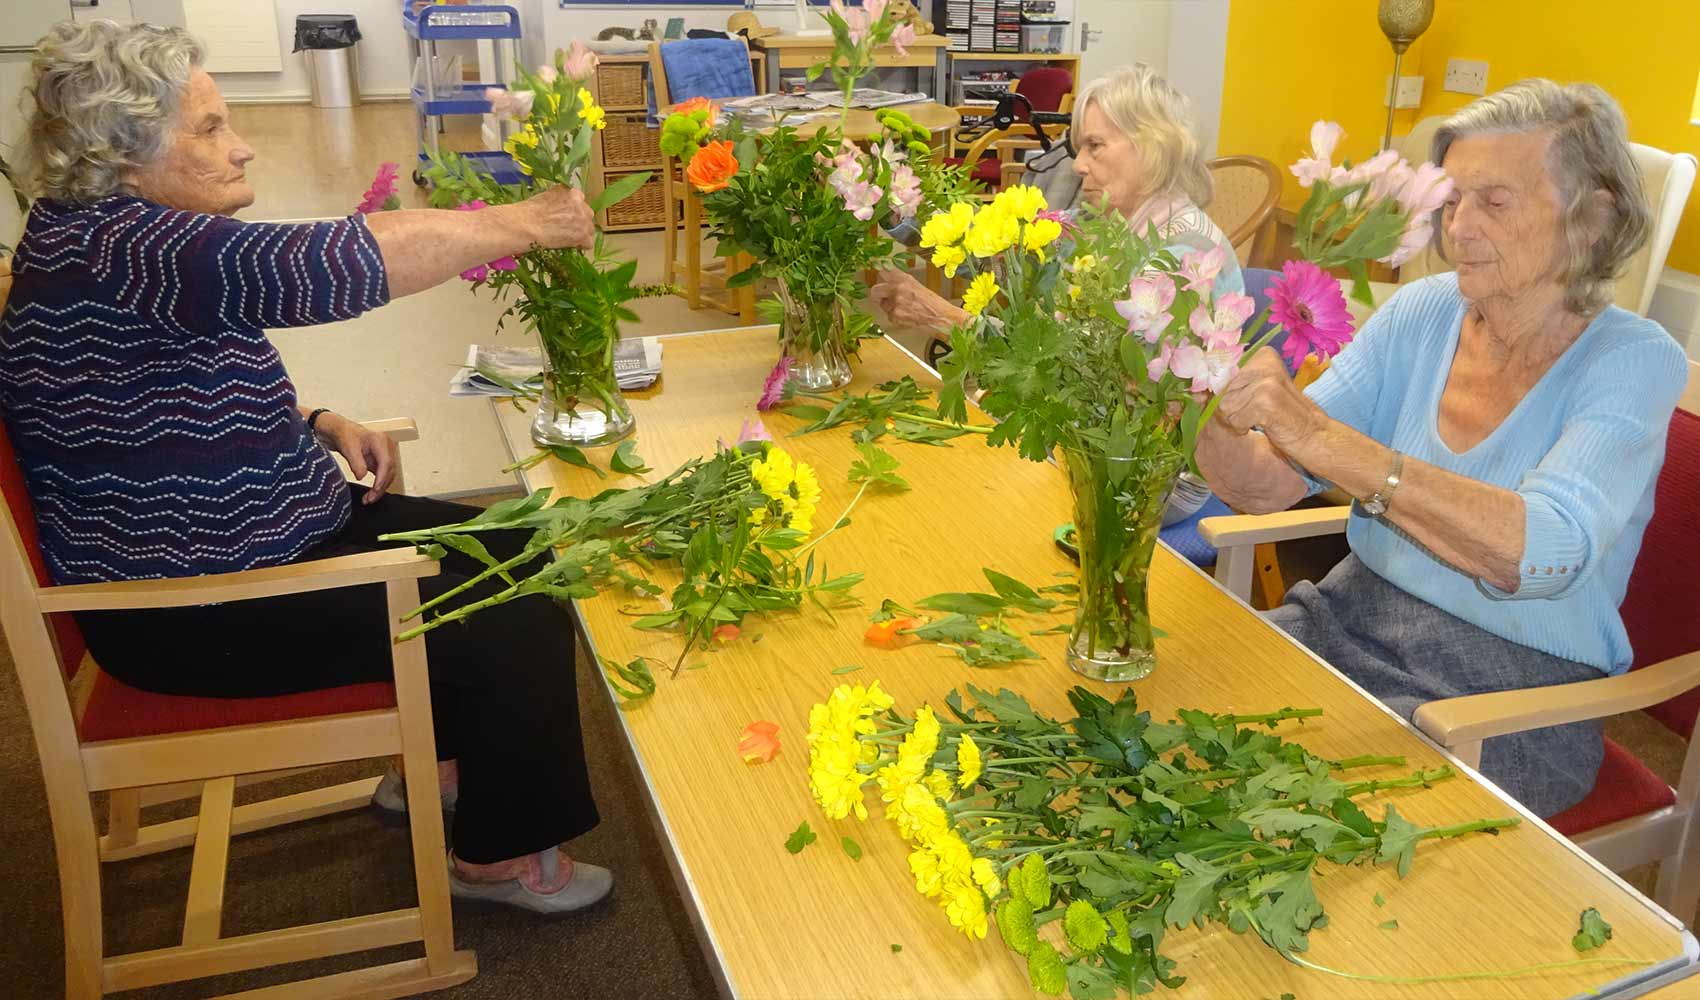 Sussexdown residents brighten up their home with flower arrangements